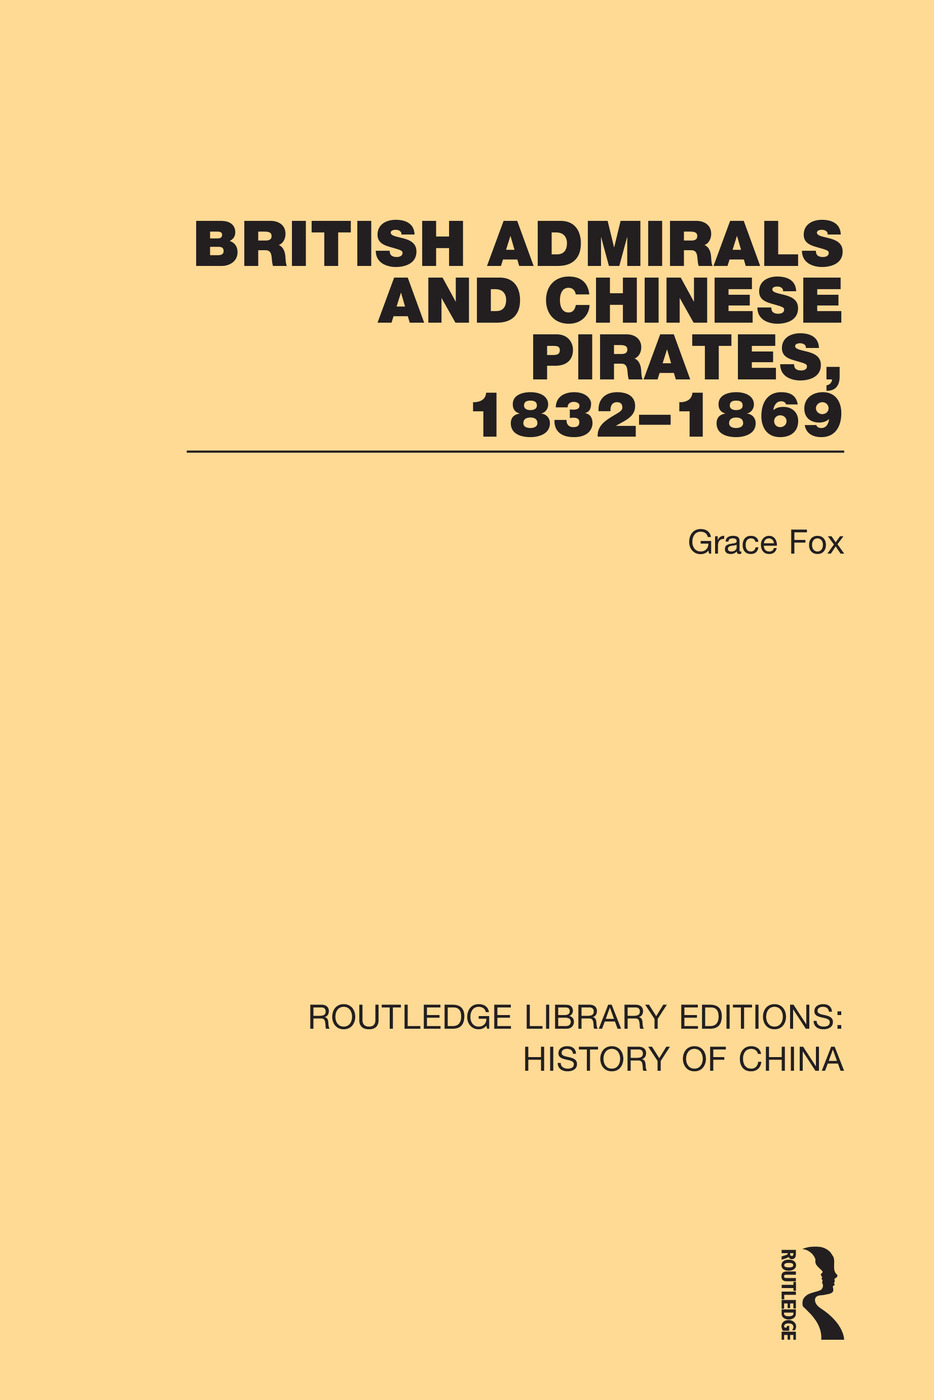 British Admirals and Chinese Pirates, 1832-1869